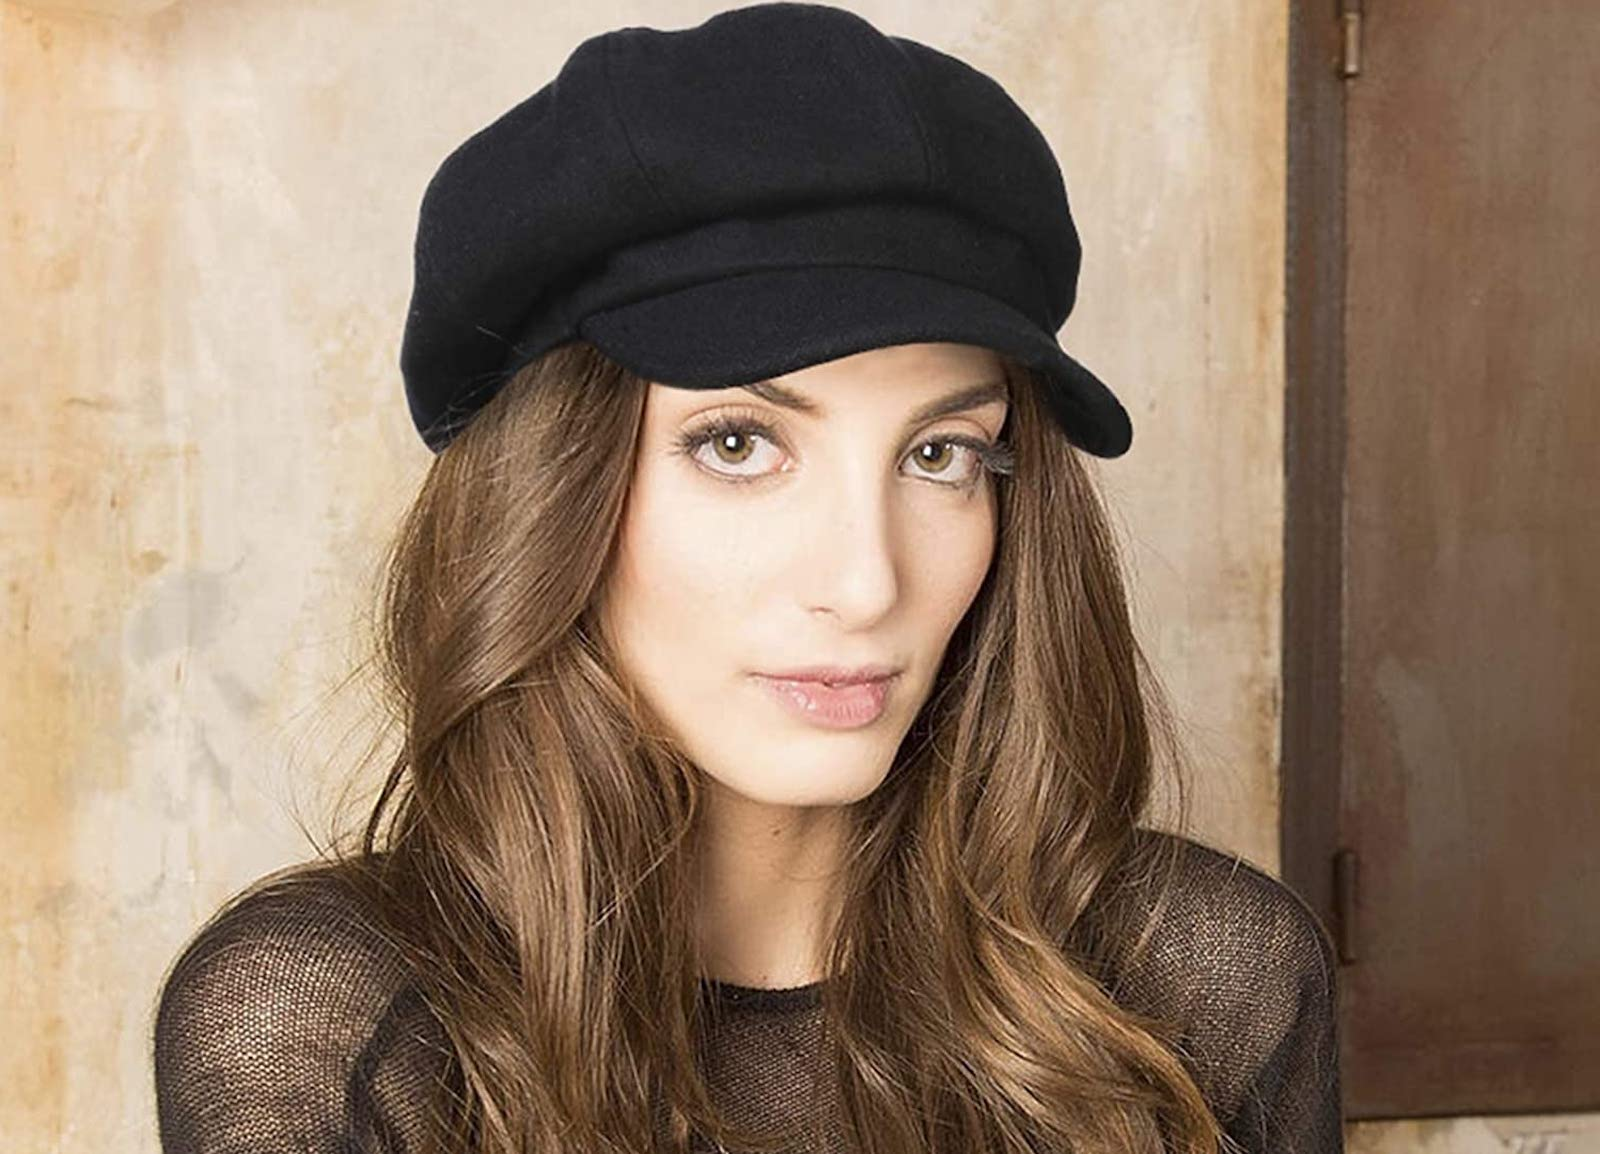 A brunette woman wearing a black newsboy cap against a brown wall